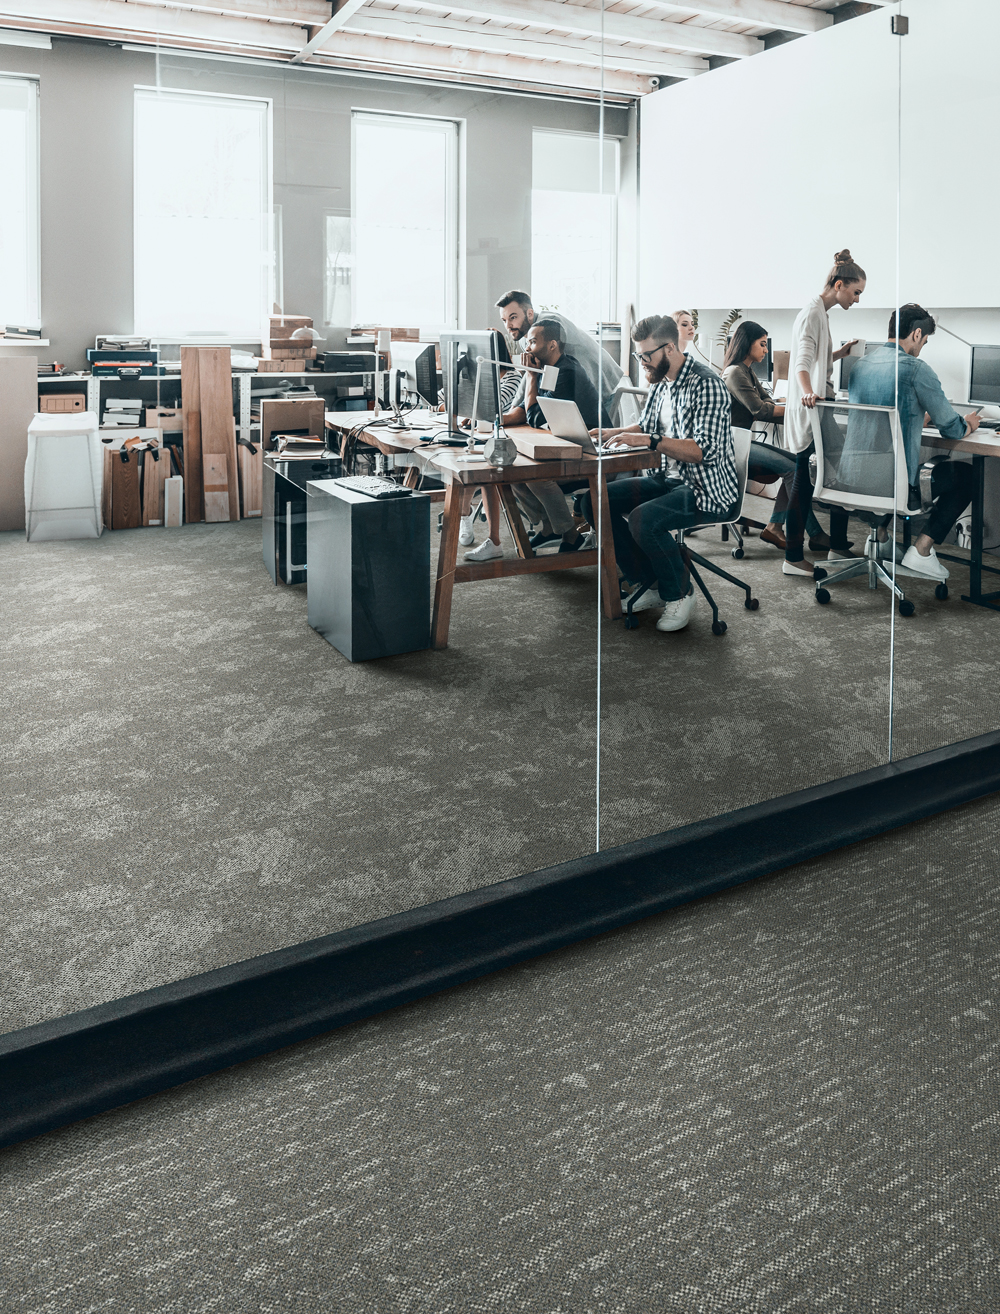 Over the Ocean OC04/Across the Sea SE04  - Over the Ocean and Across the Sea are designed to work in almost any environment requiring soft surface flooring and provide extra comfort under foot and excellent sound absorption.